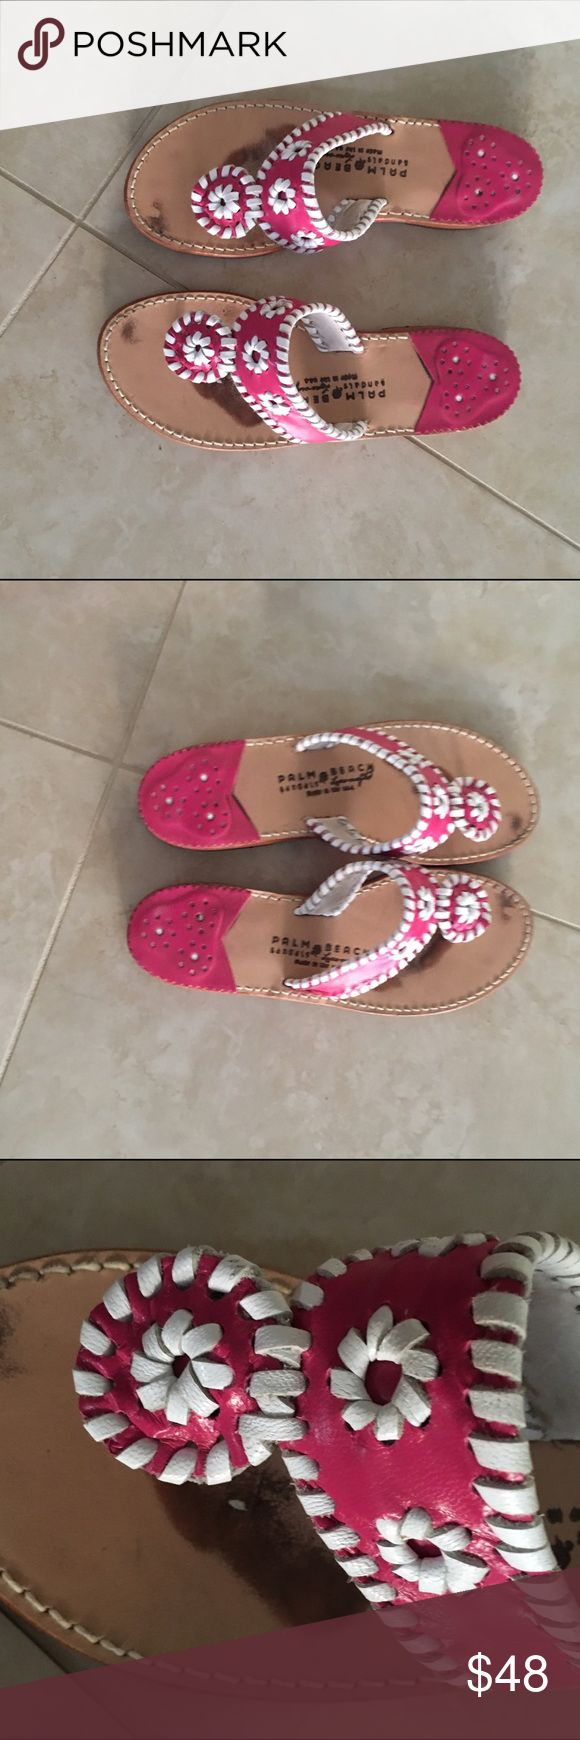 EUC Palm Beach Sandals 7.5 EUC Palm Beach Sandals 7.5 Jack Rogers Shoes Sandals